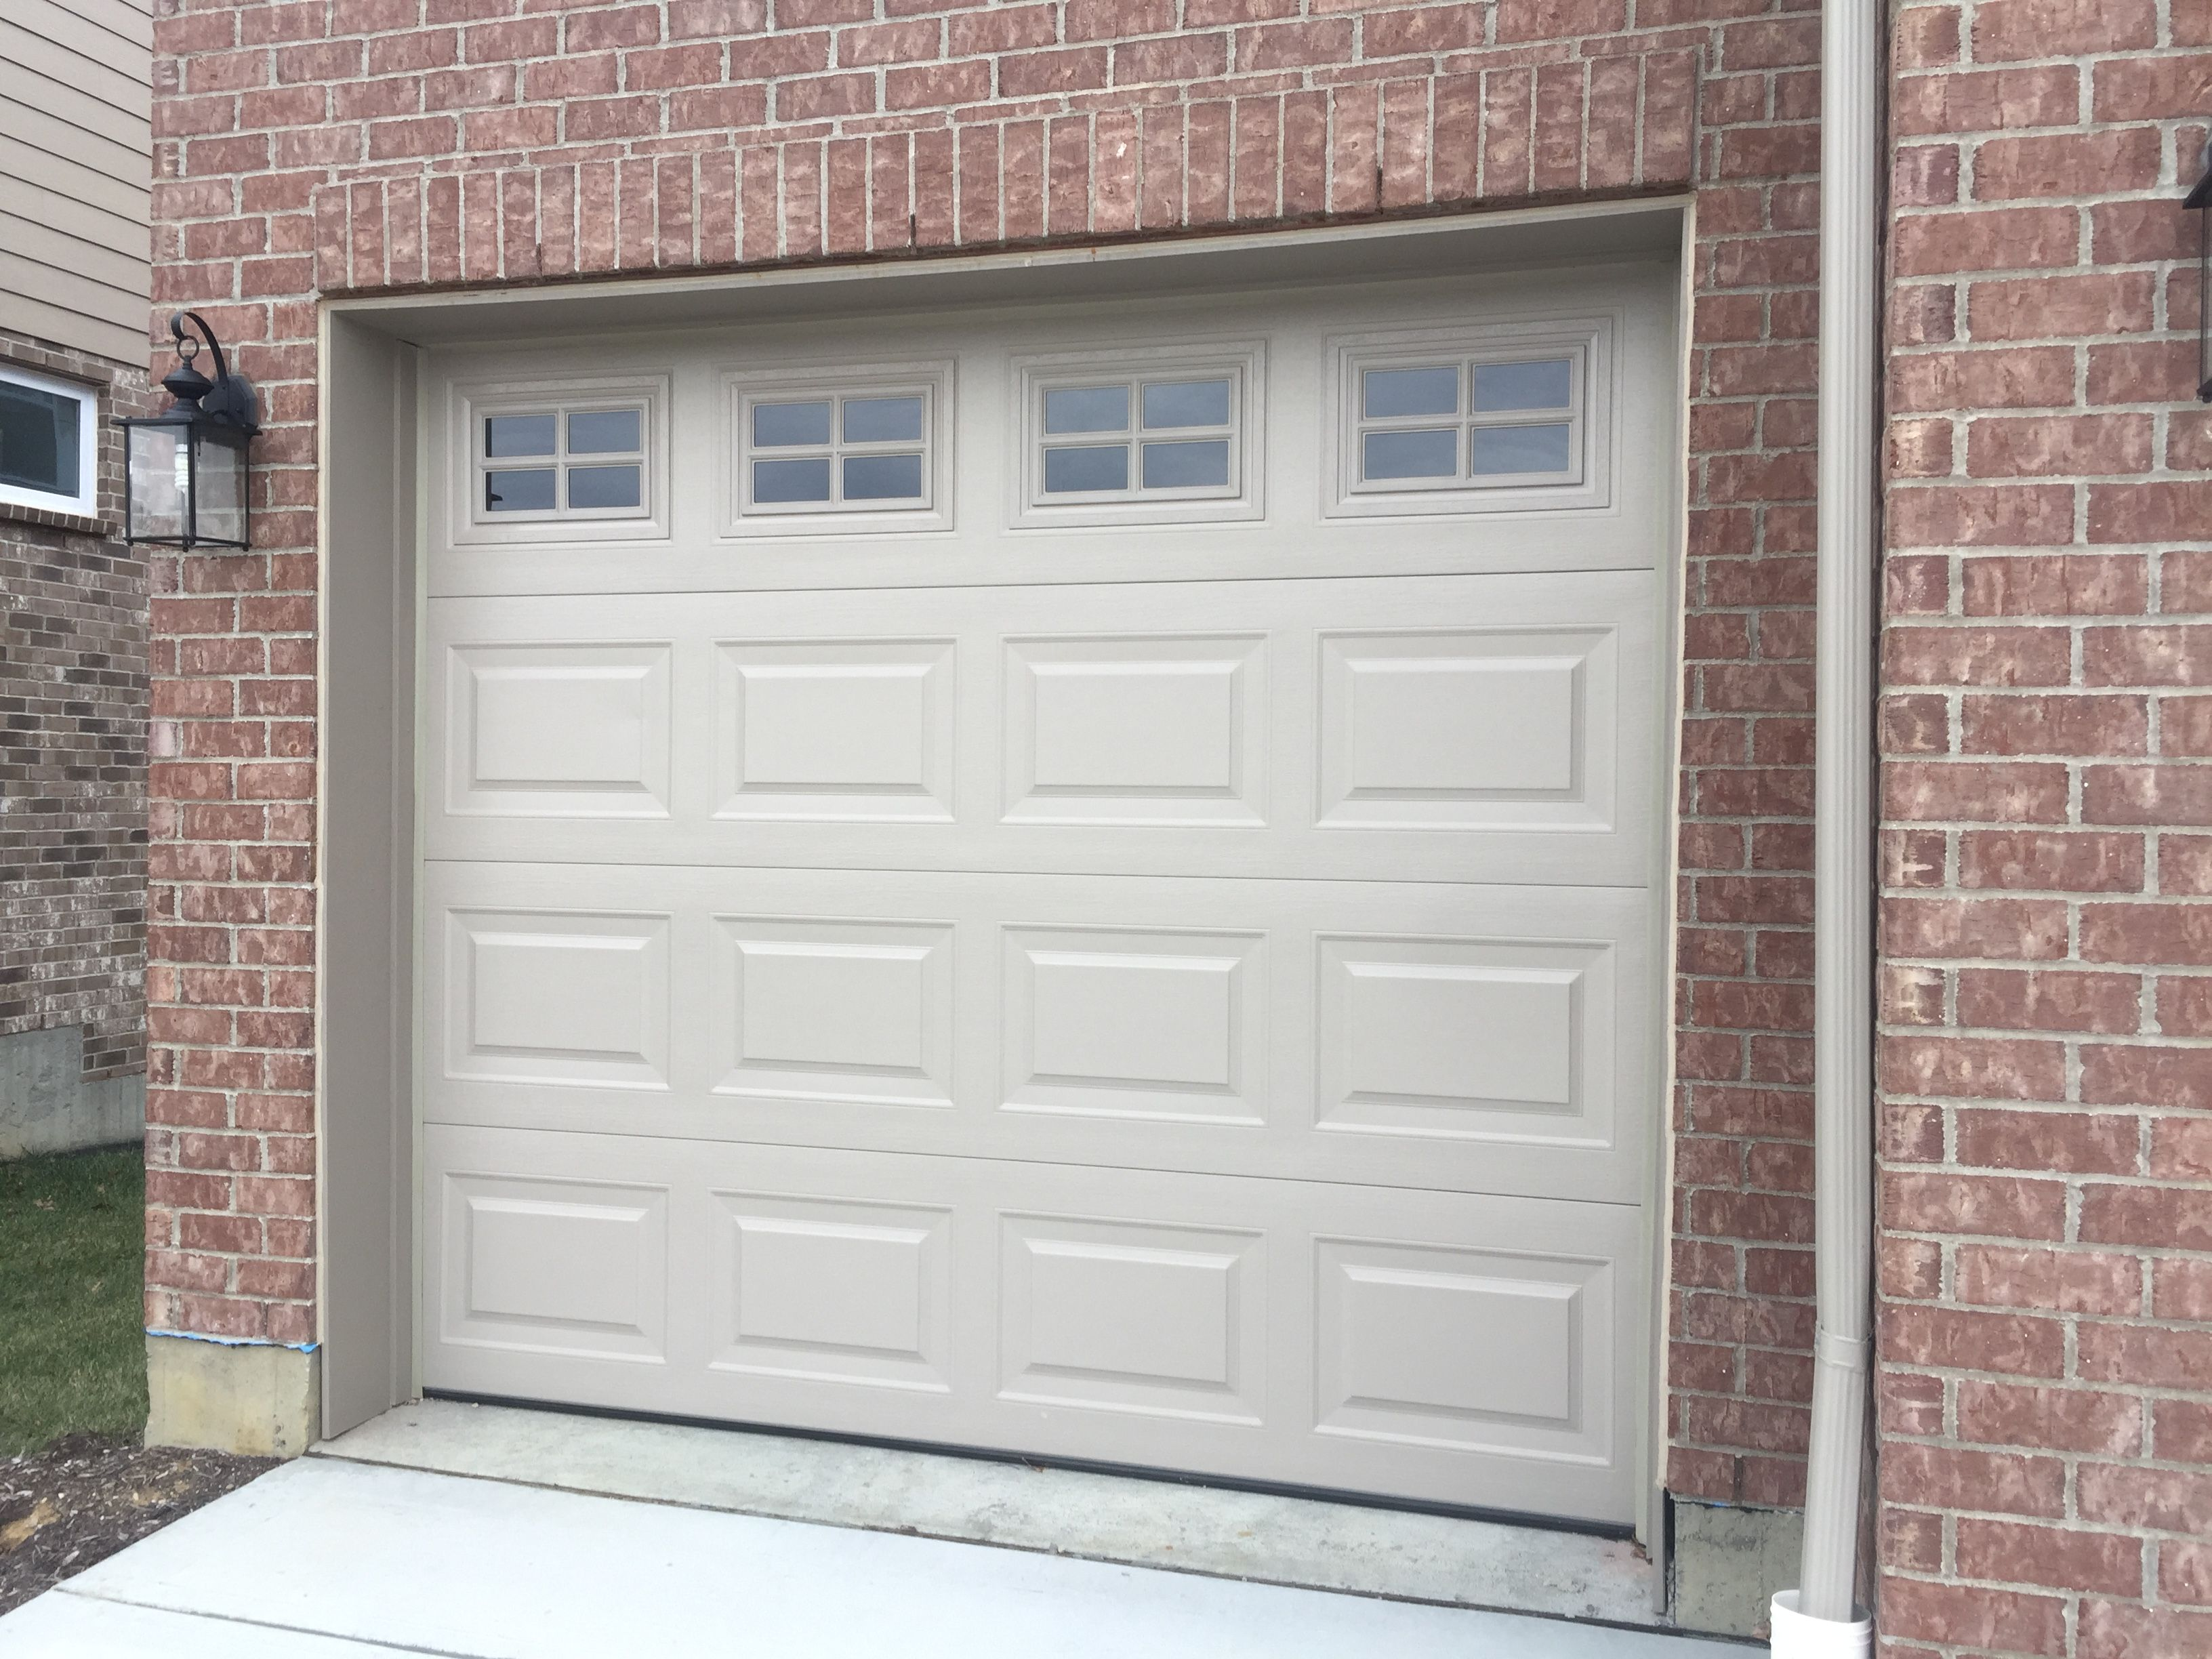 Sandstone Garage Door With Windows Garage Doors Window